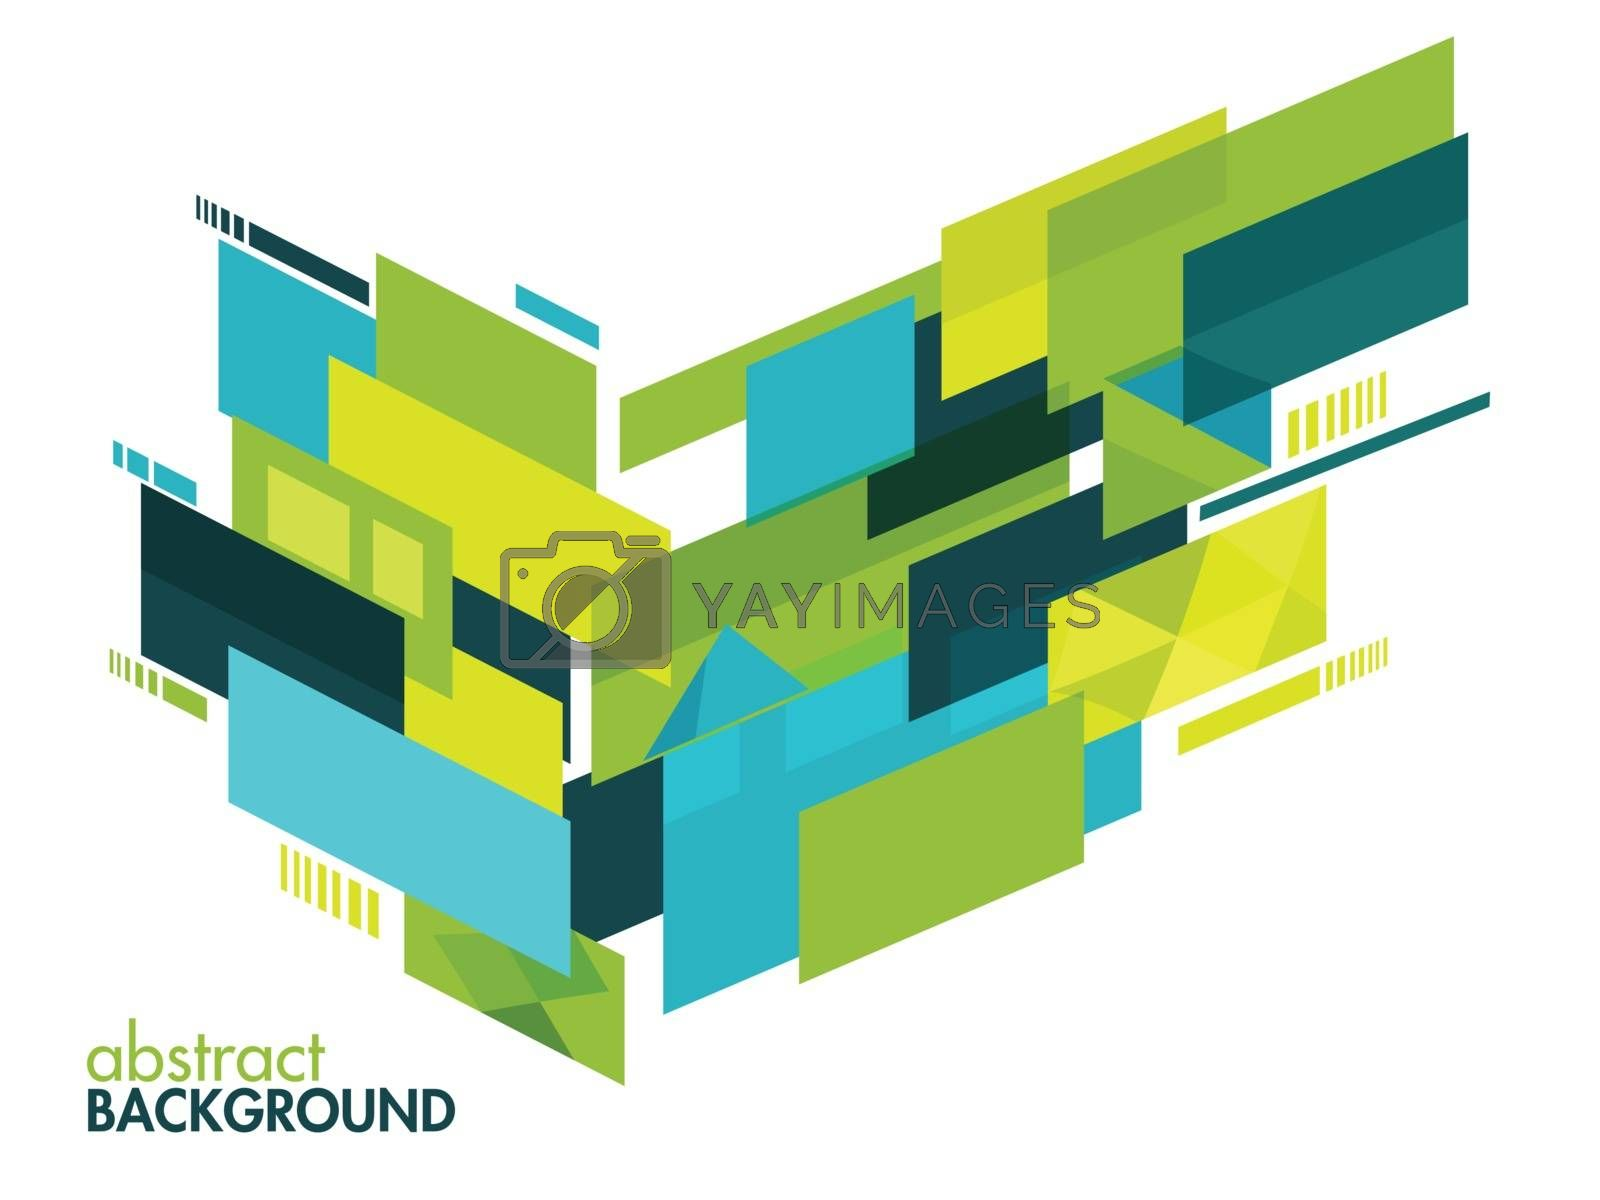 Creative abstract geometric background. by aispl